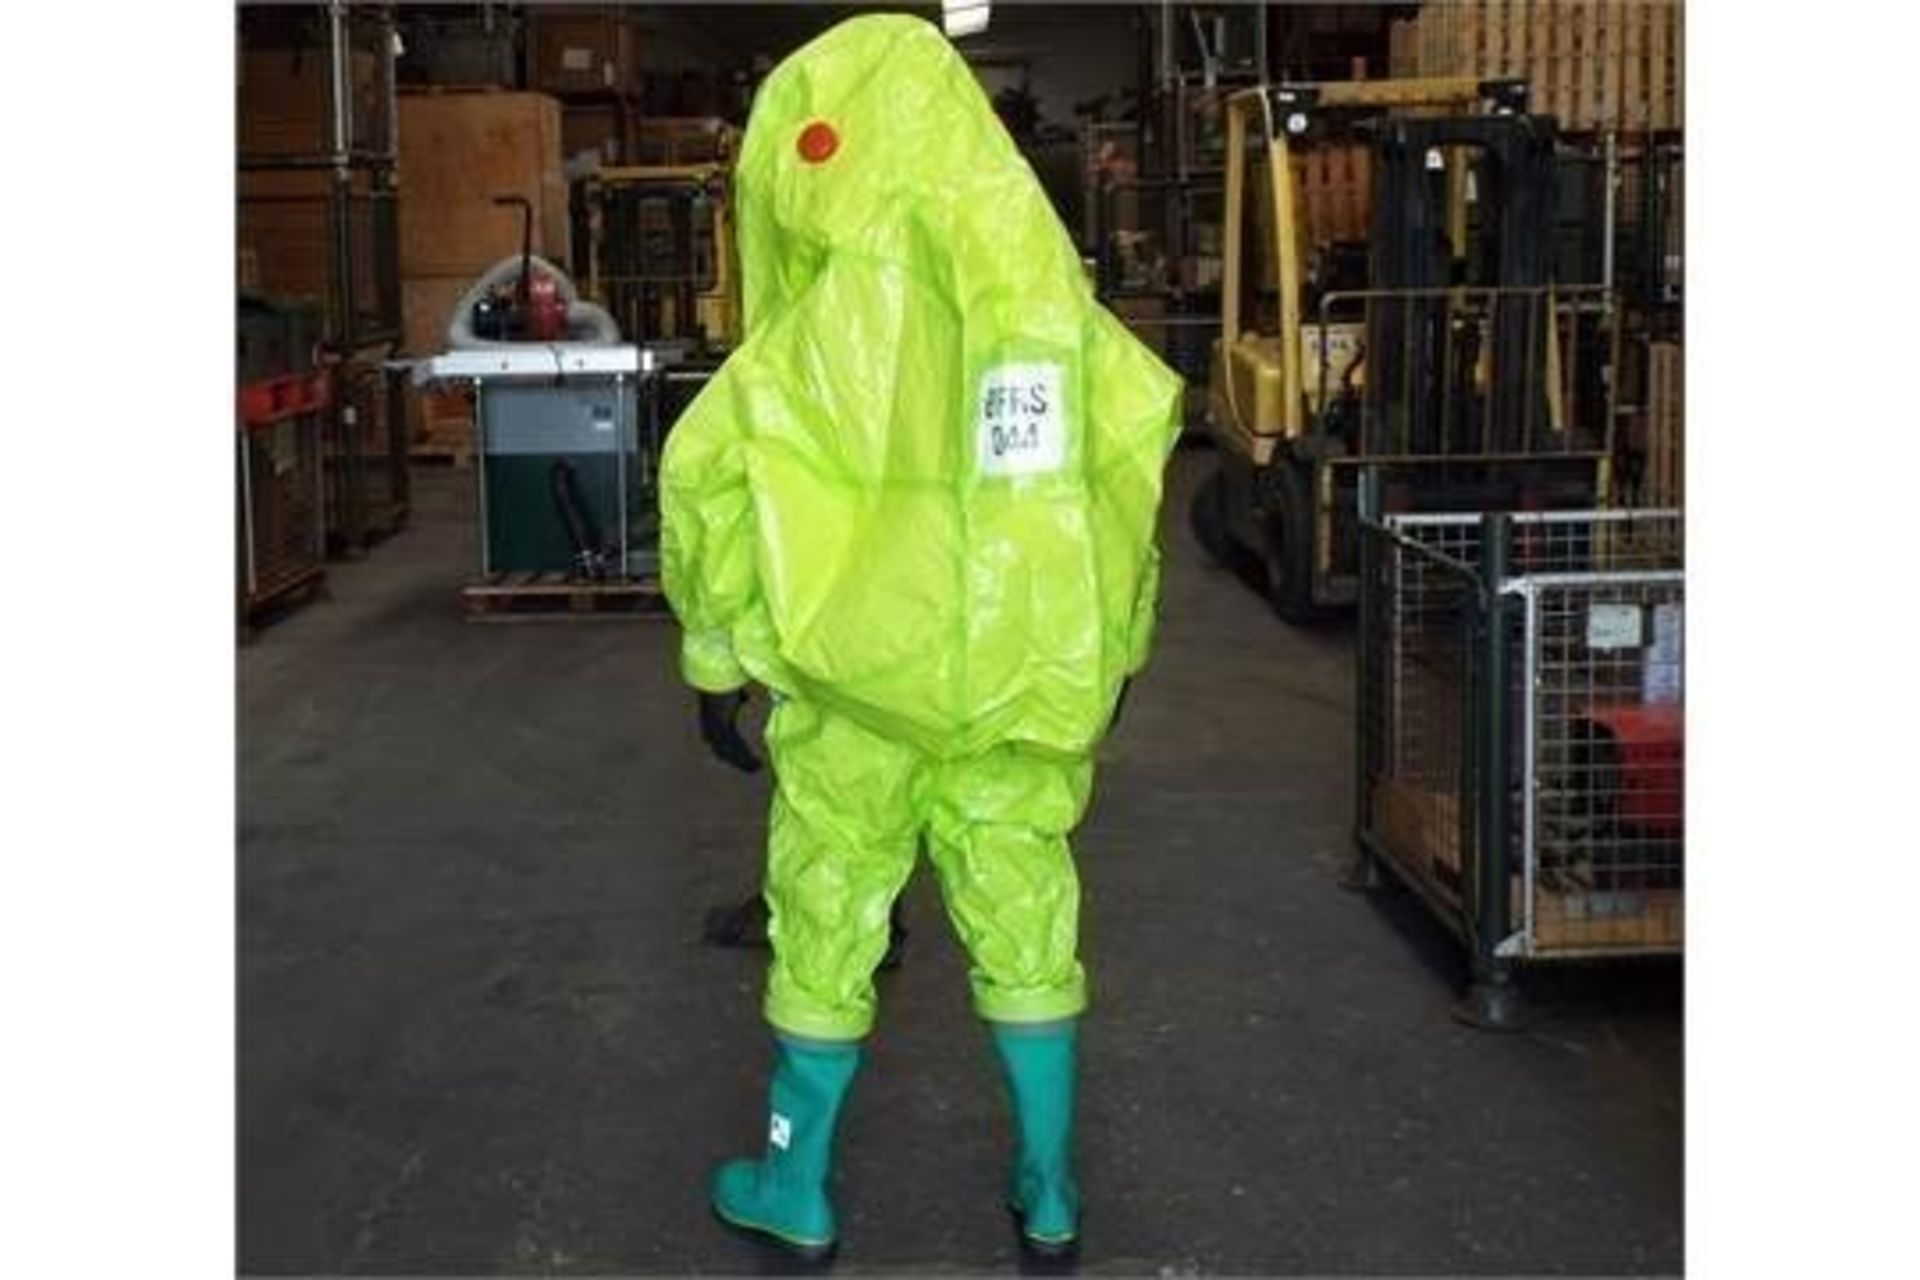 Lot 26626 - Q10 x Unissued Respirex Tychem TK Gas-Tight Hazmat Suit. Size Medium